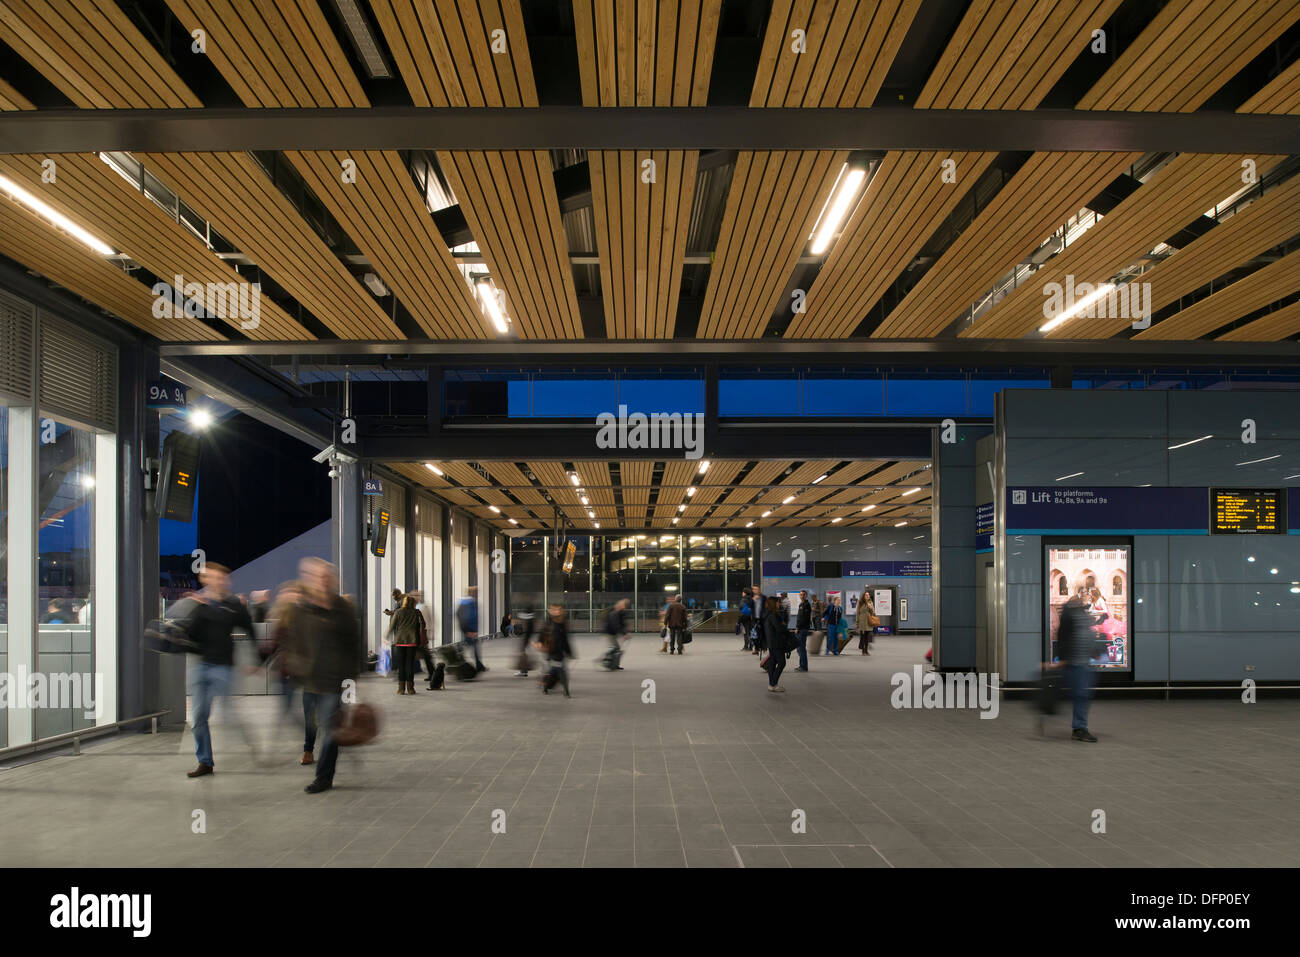 Reading Train Station, Reading, United Kingdom. Architect: Grimshaw, 2015. View through glazed transfer deck. Stock Photo